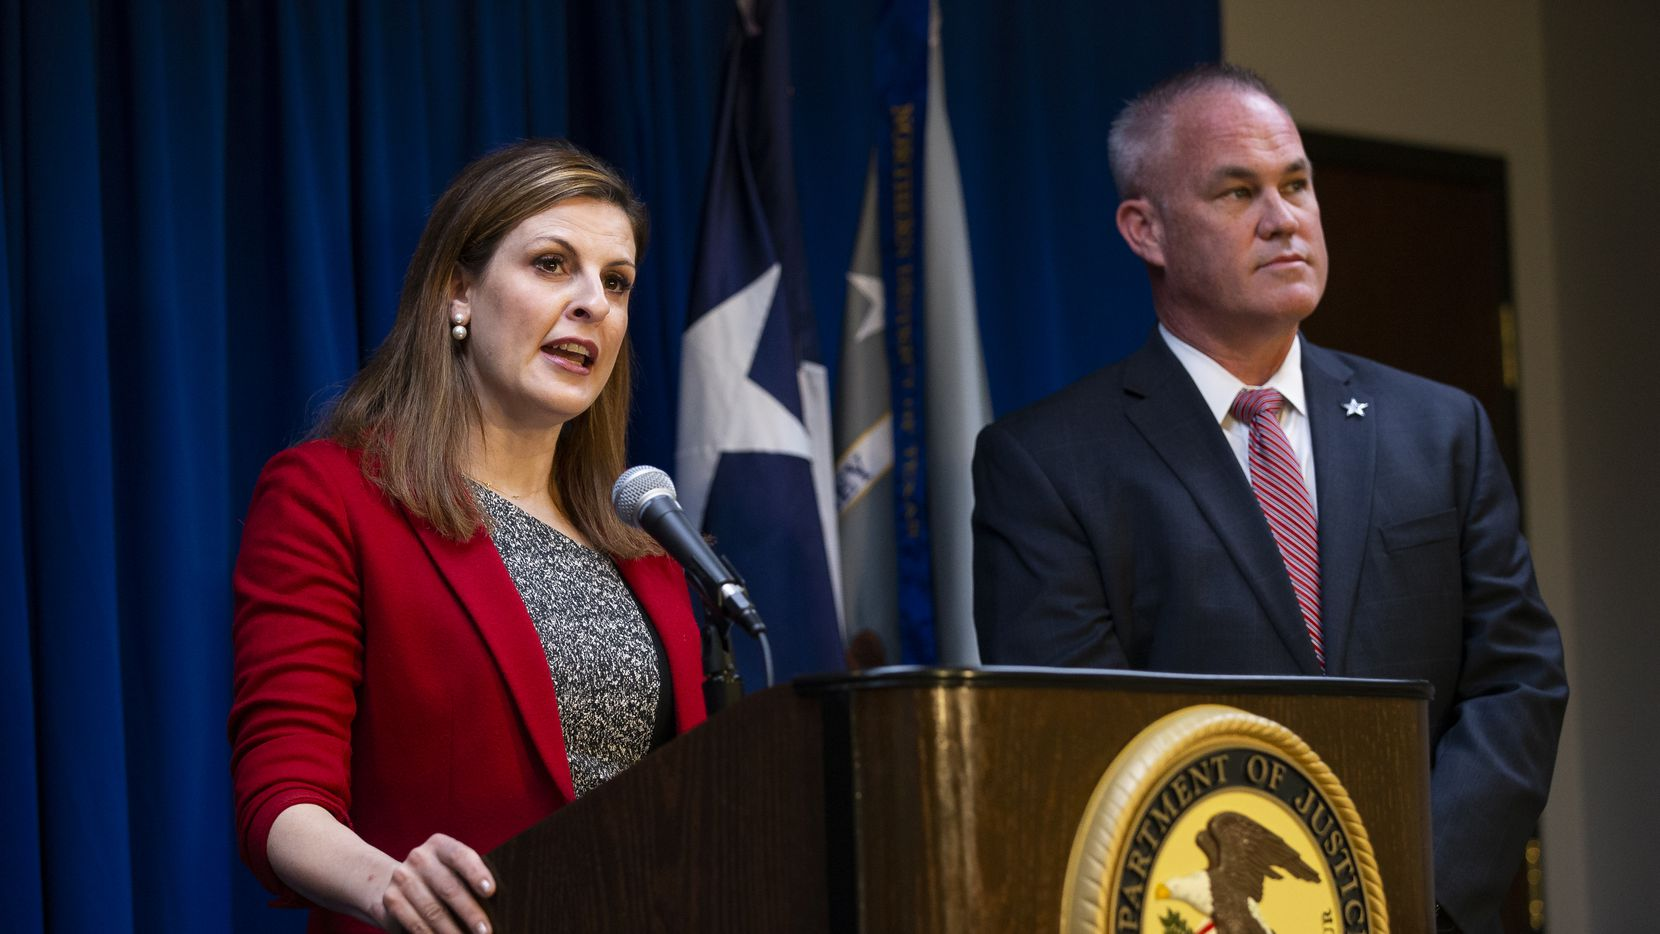 U.S. Attorney for the Northern District of Texas Erin Nealy Cox with ATF Special Agent in Charge Jeffrey C. Boshek II announce three arrests in Project Guardian, an effort to reduce gun violence, at a press conference on March 12, 2020, in Dallas. (Juan Figueroa/ The Dallas Morning News)